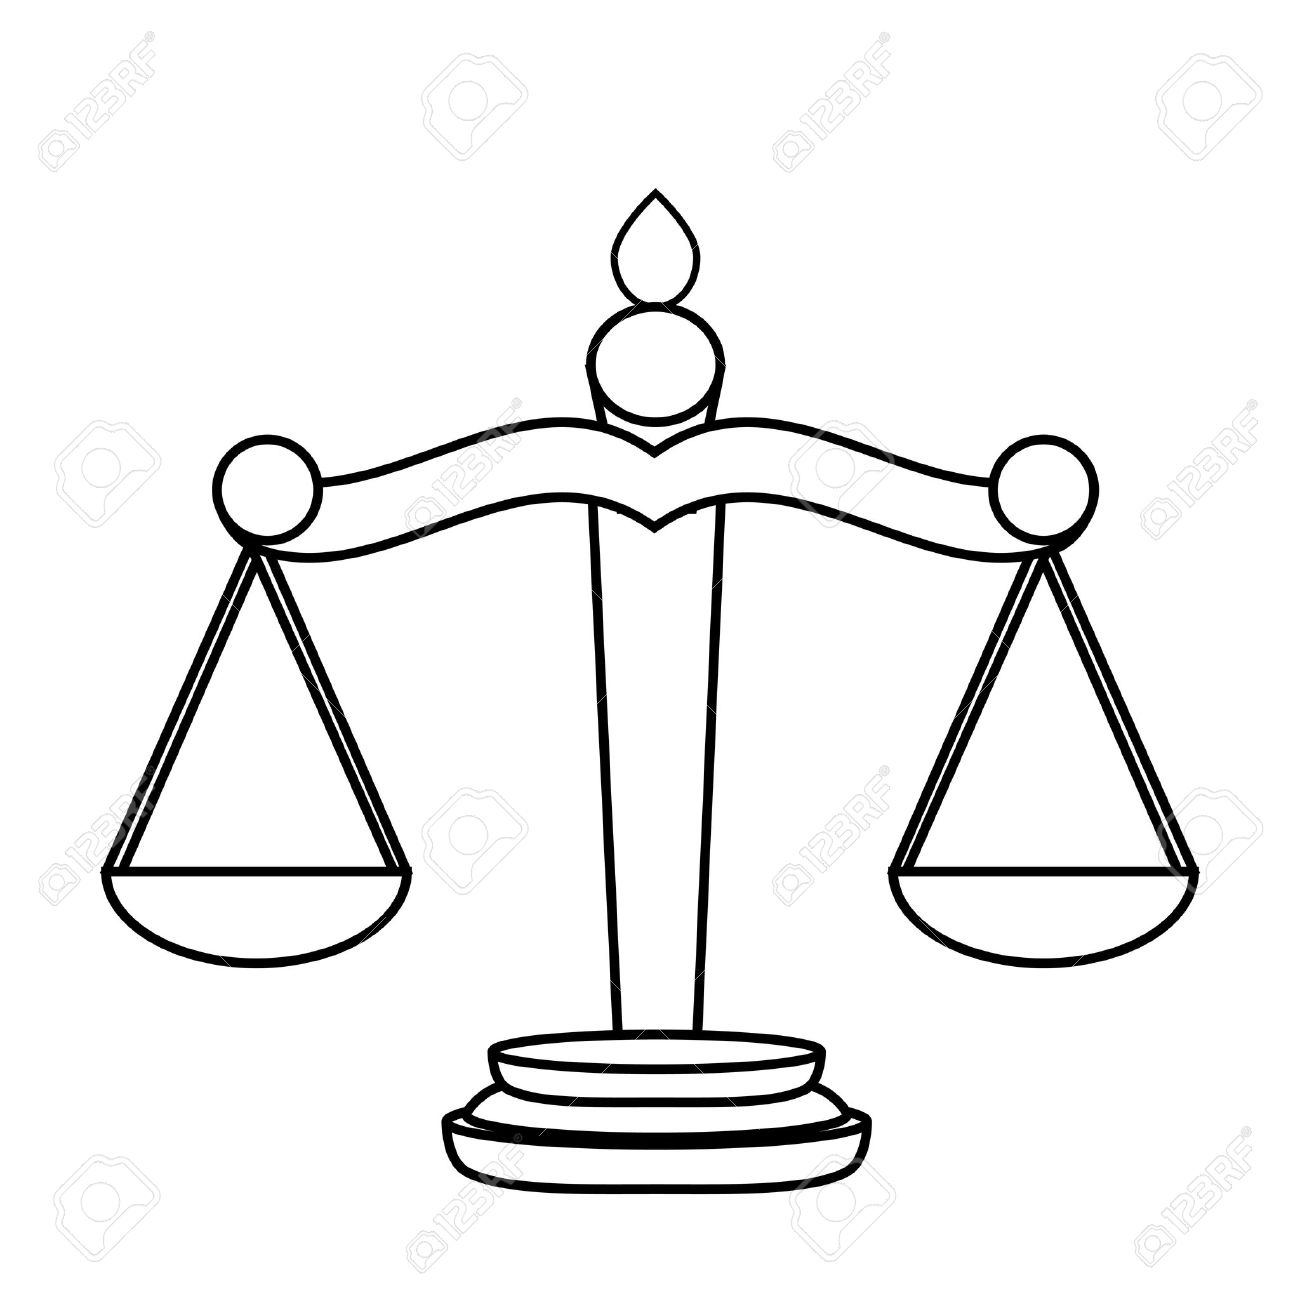 Scales of Justice - 16672151